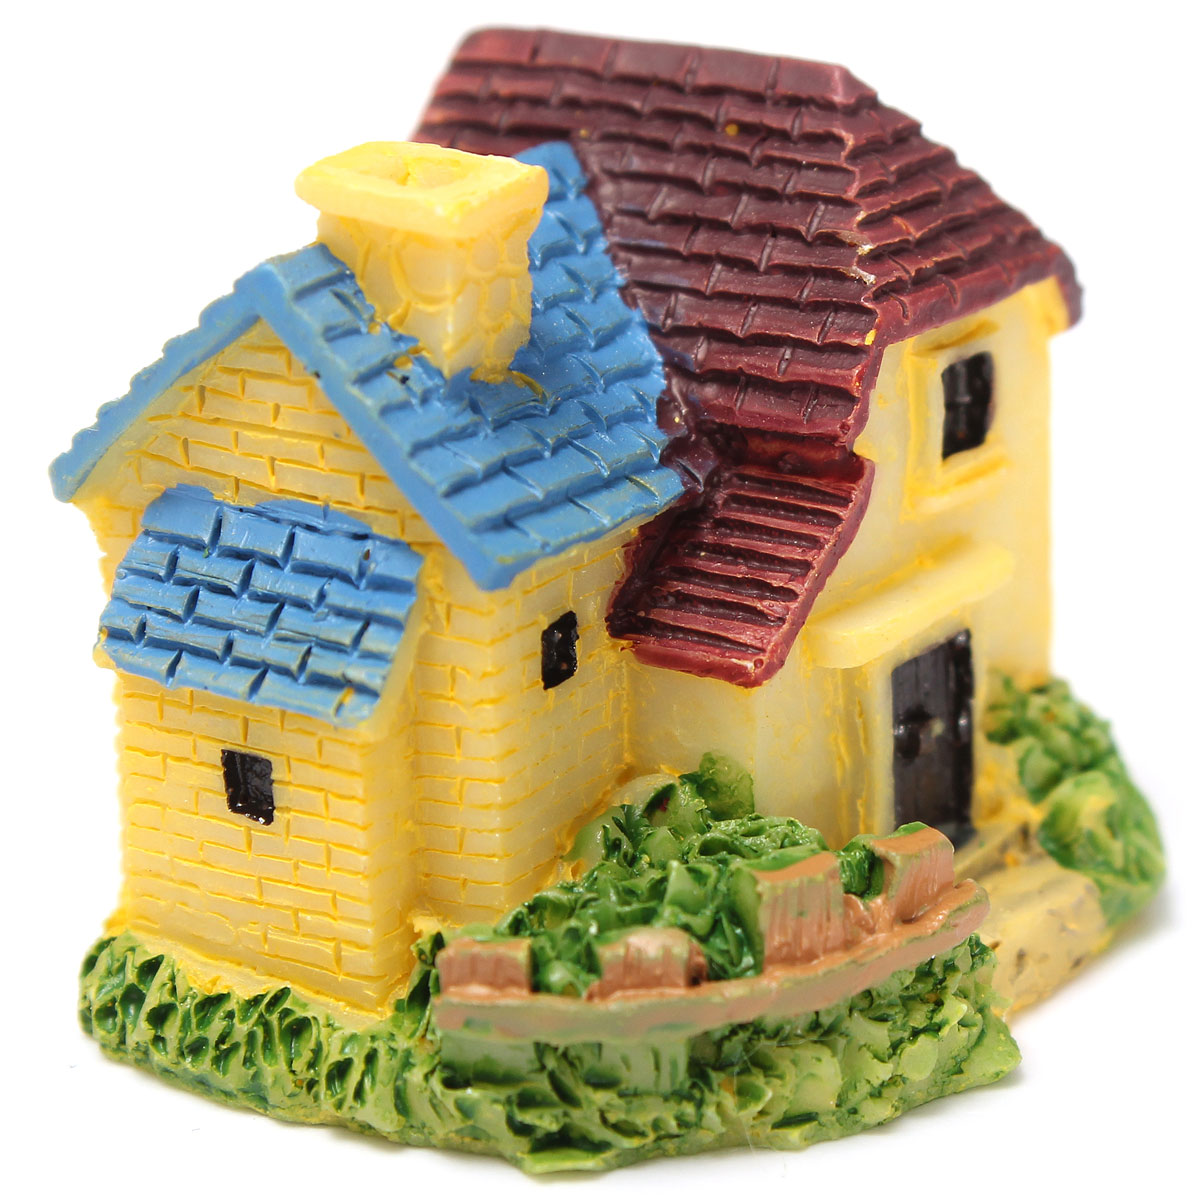 Miniature Mini Villa Flower Planter Potted Decor Garden Ornament